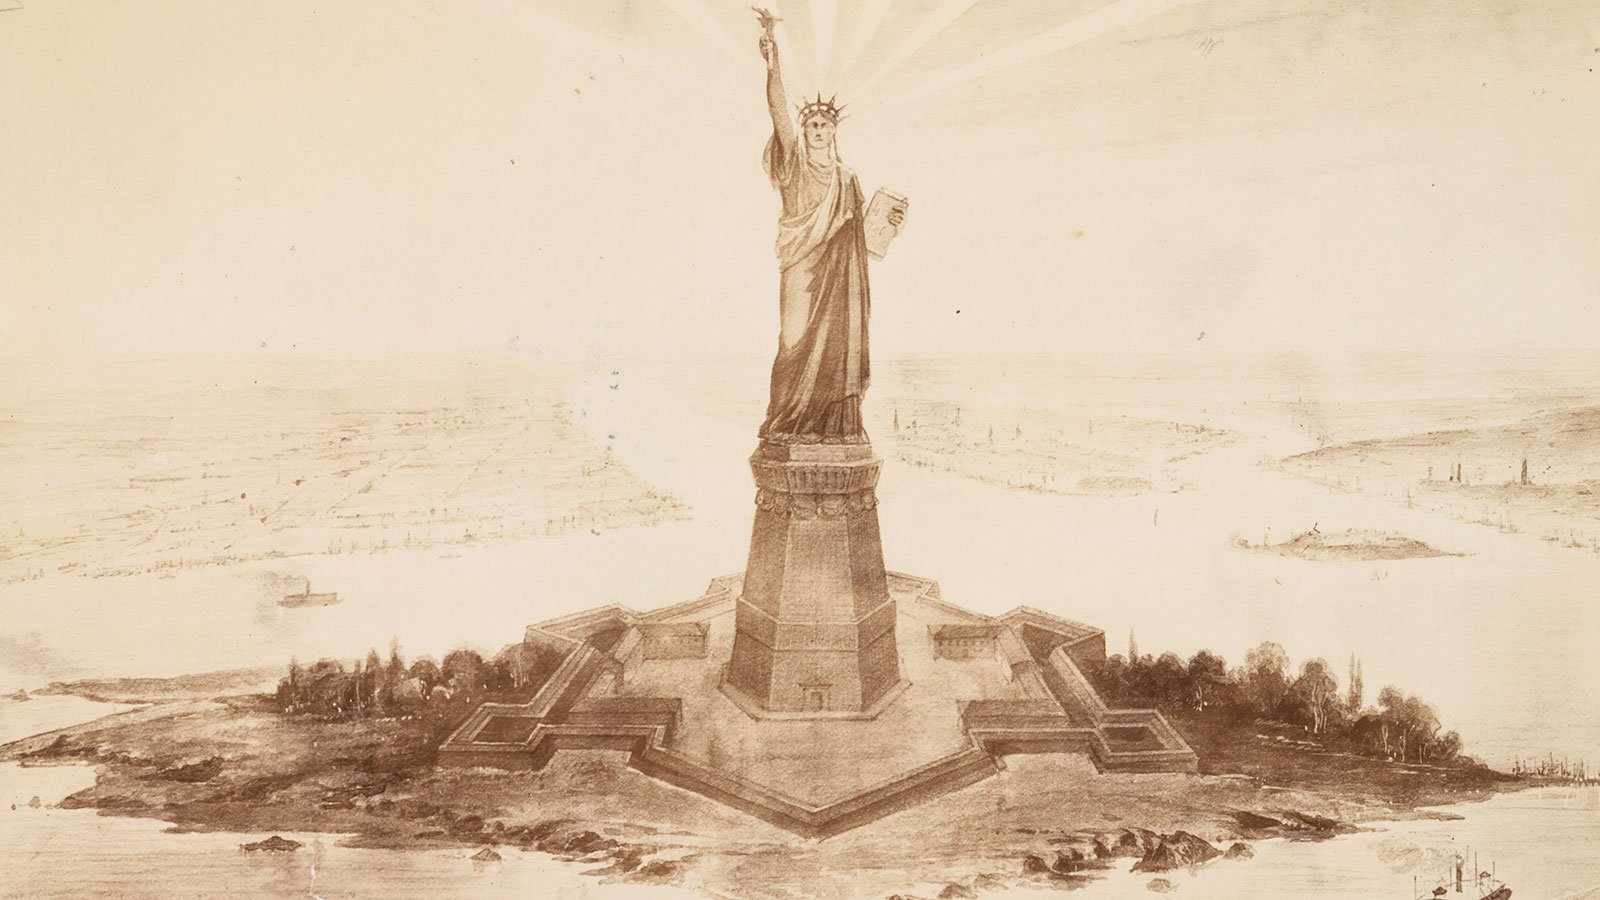 drawing of the Statue of Liberty in Upper New York Bay, 1883